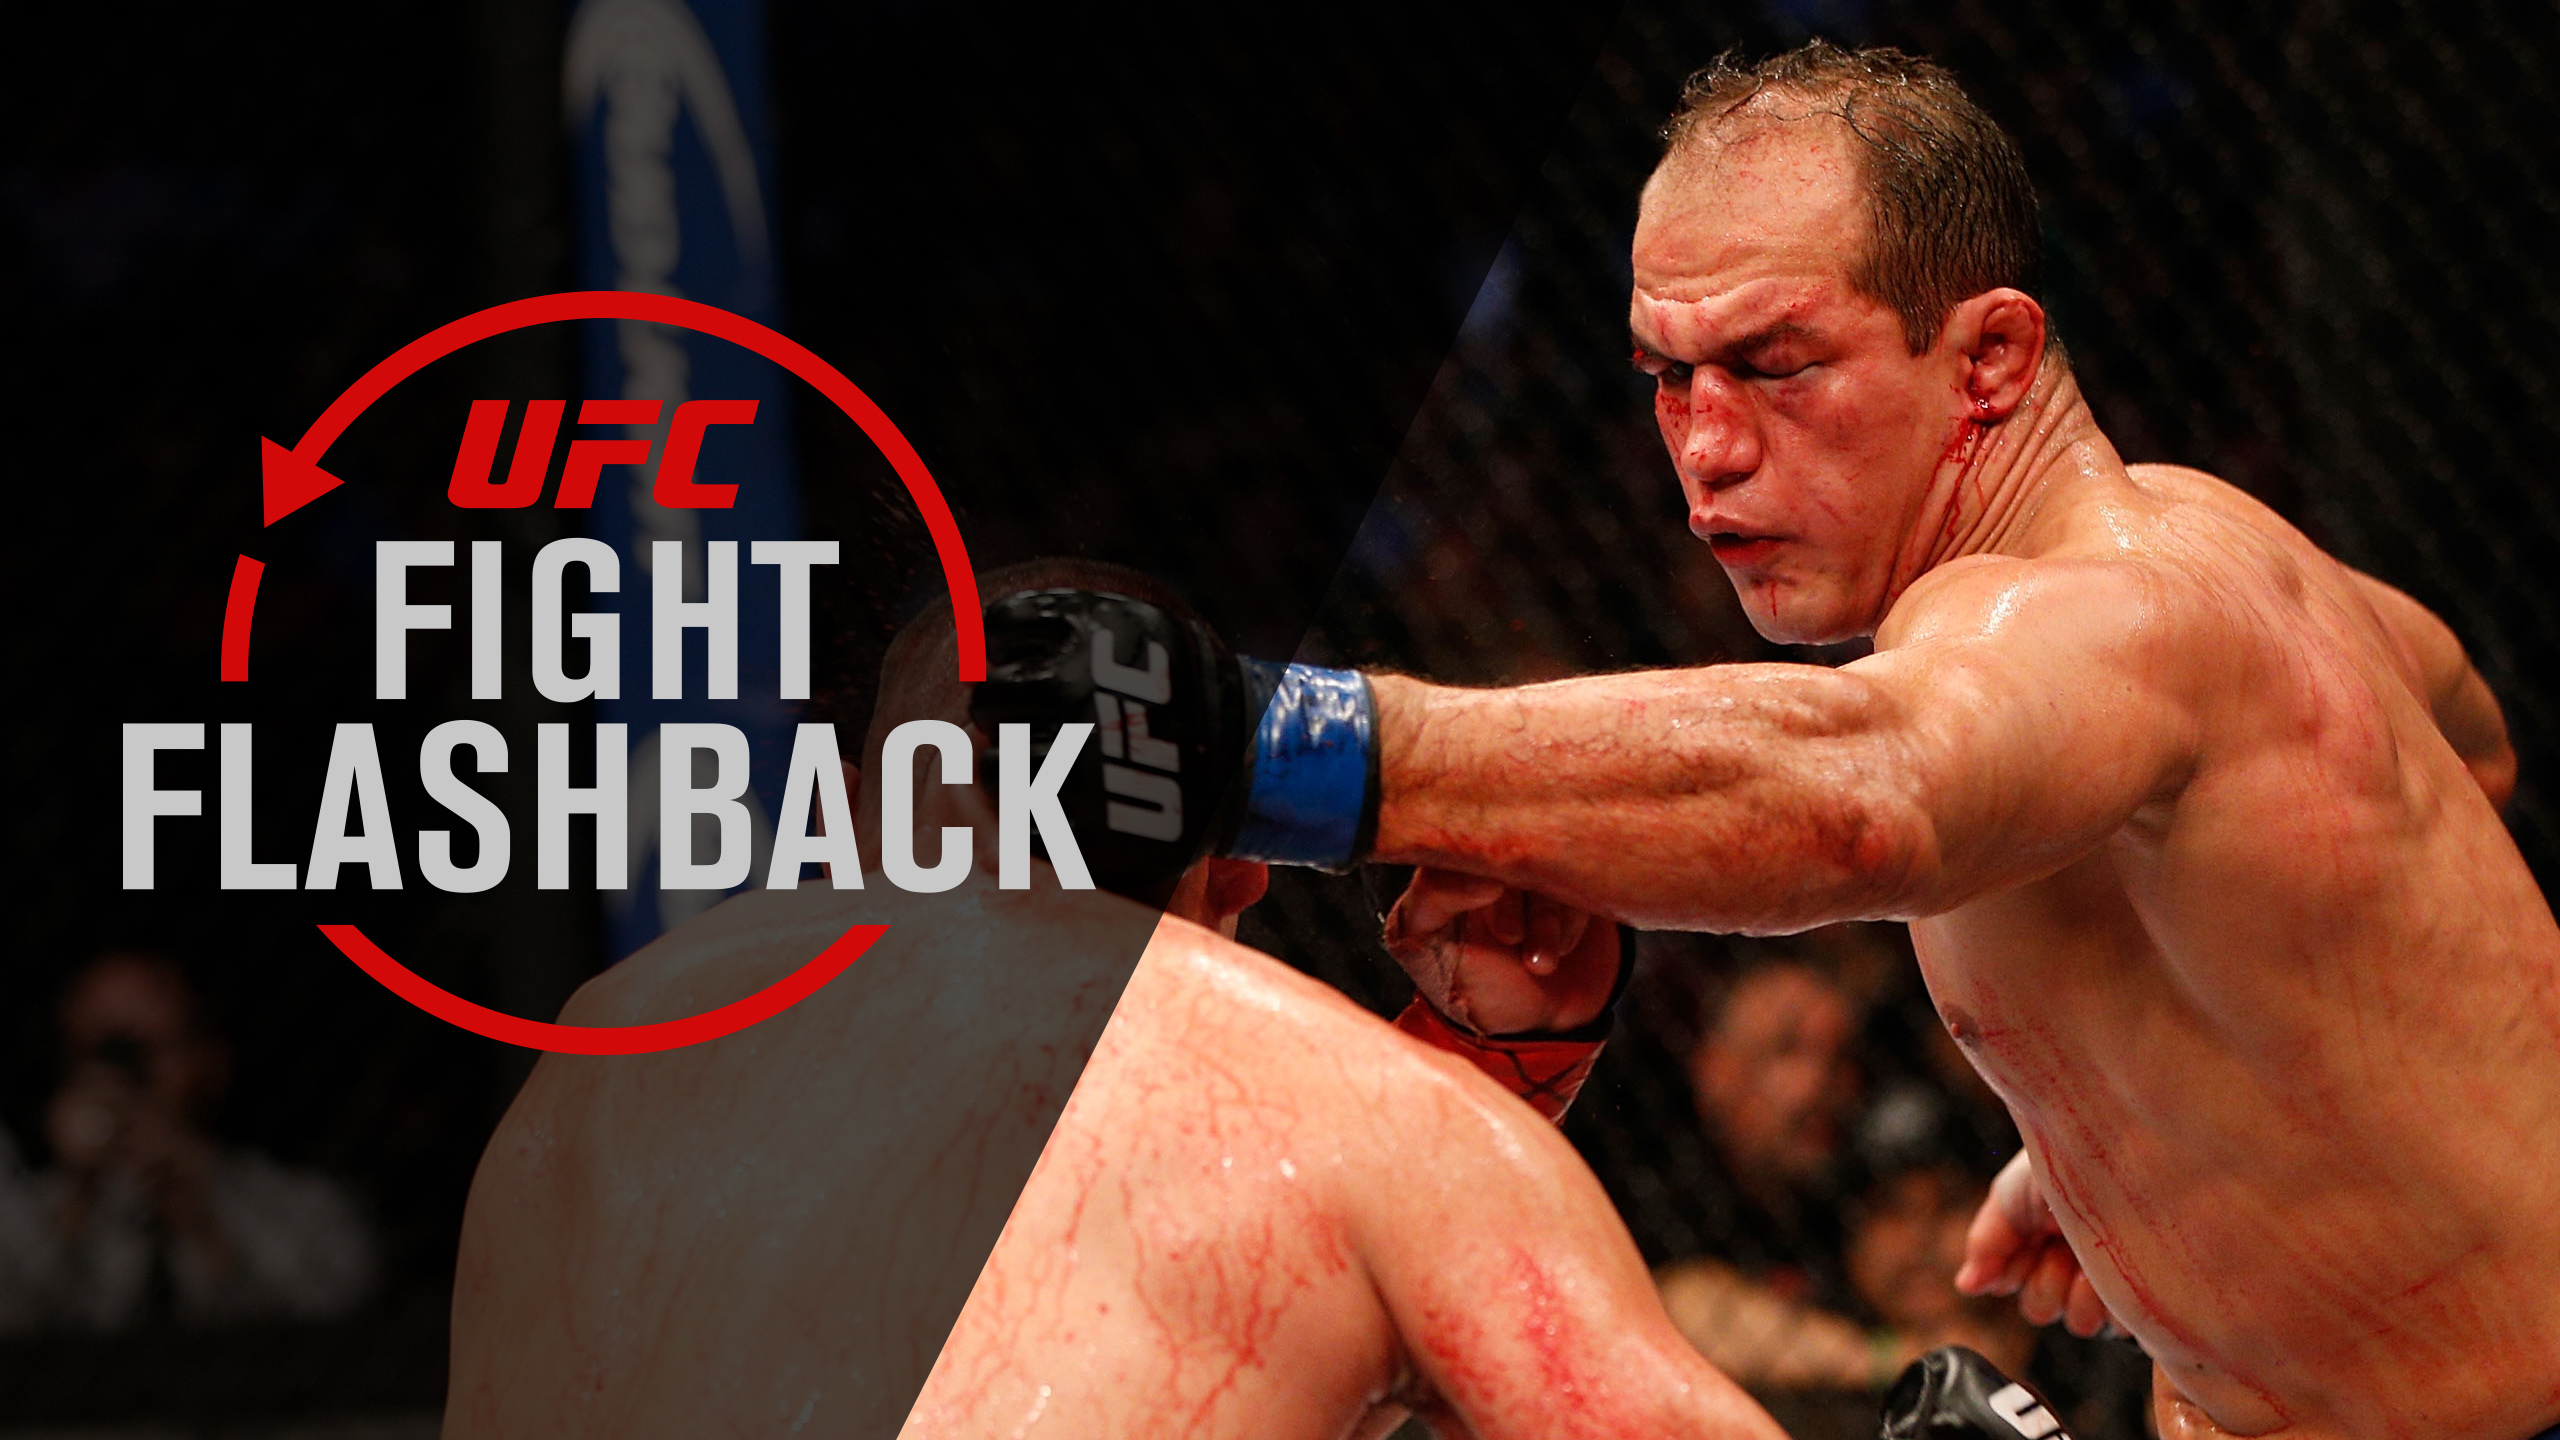 UFC Fight Flashback: Velasquez vs. Dos Santos 3